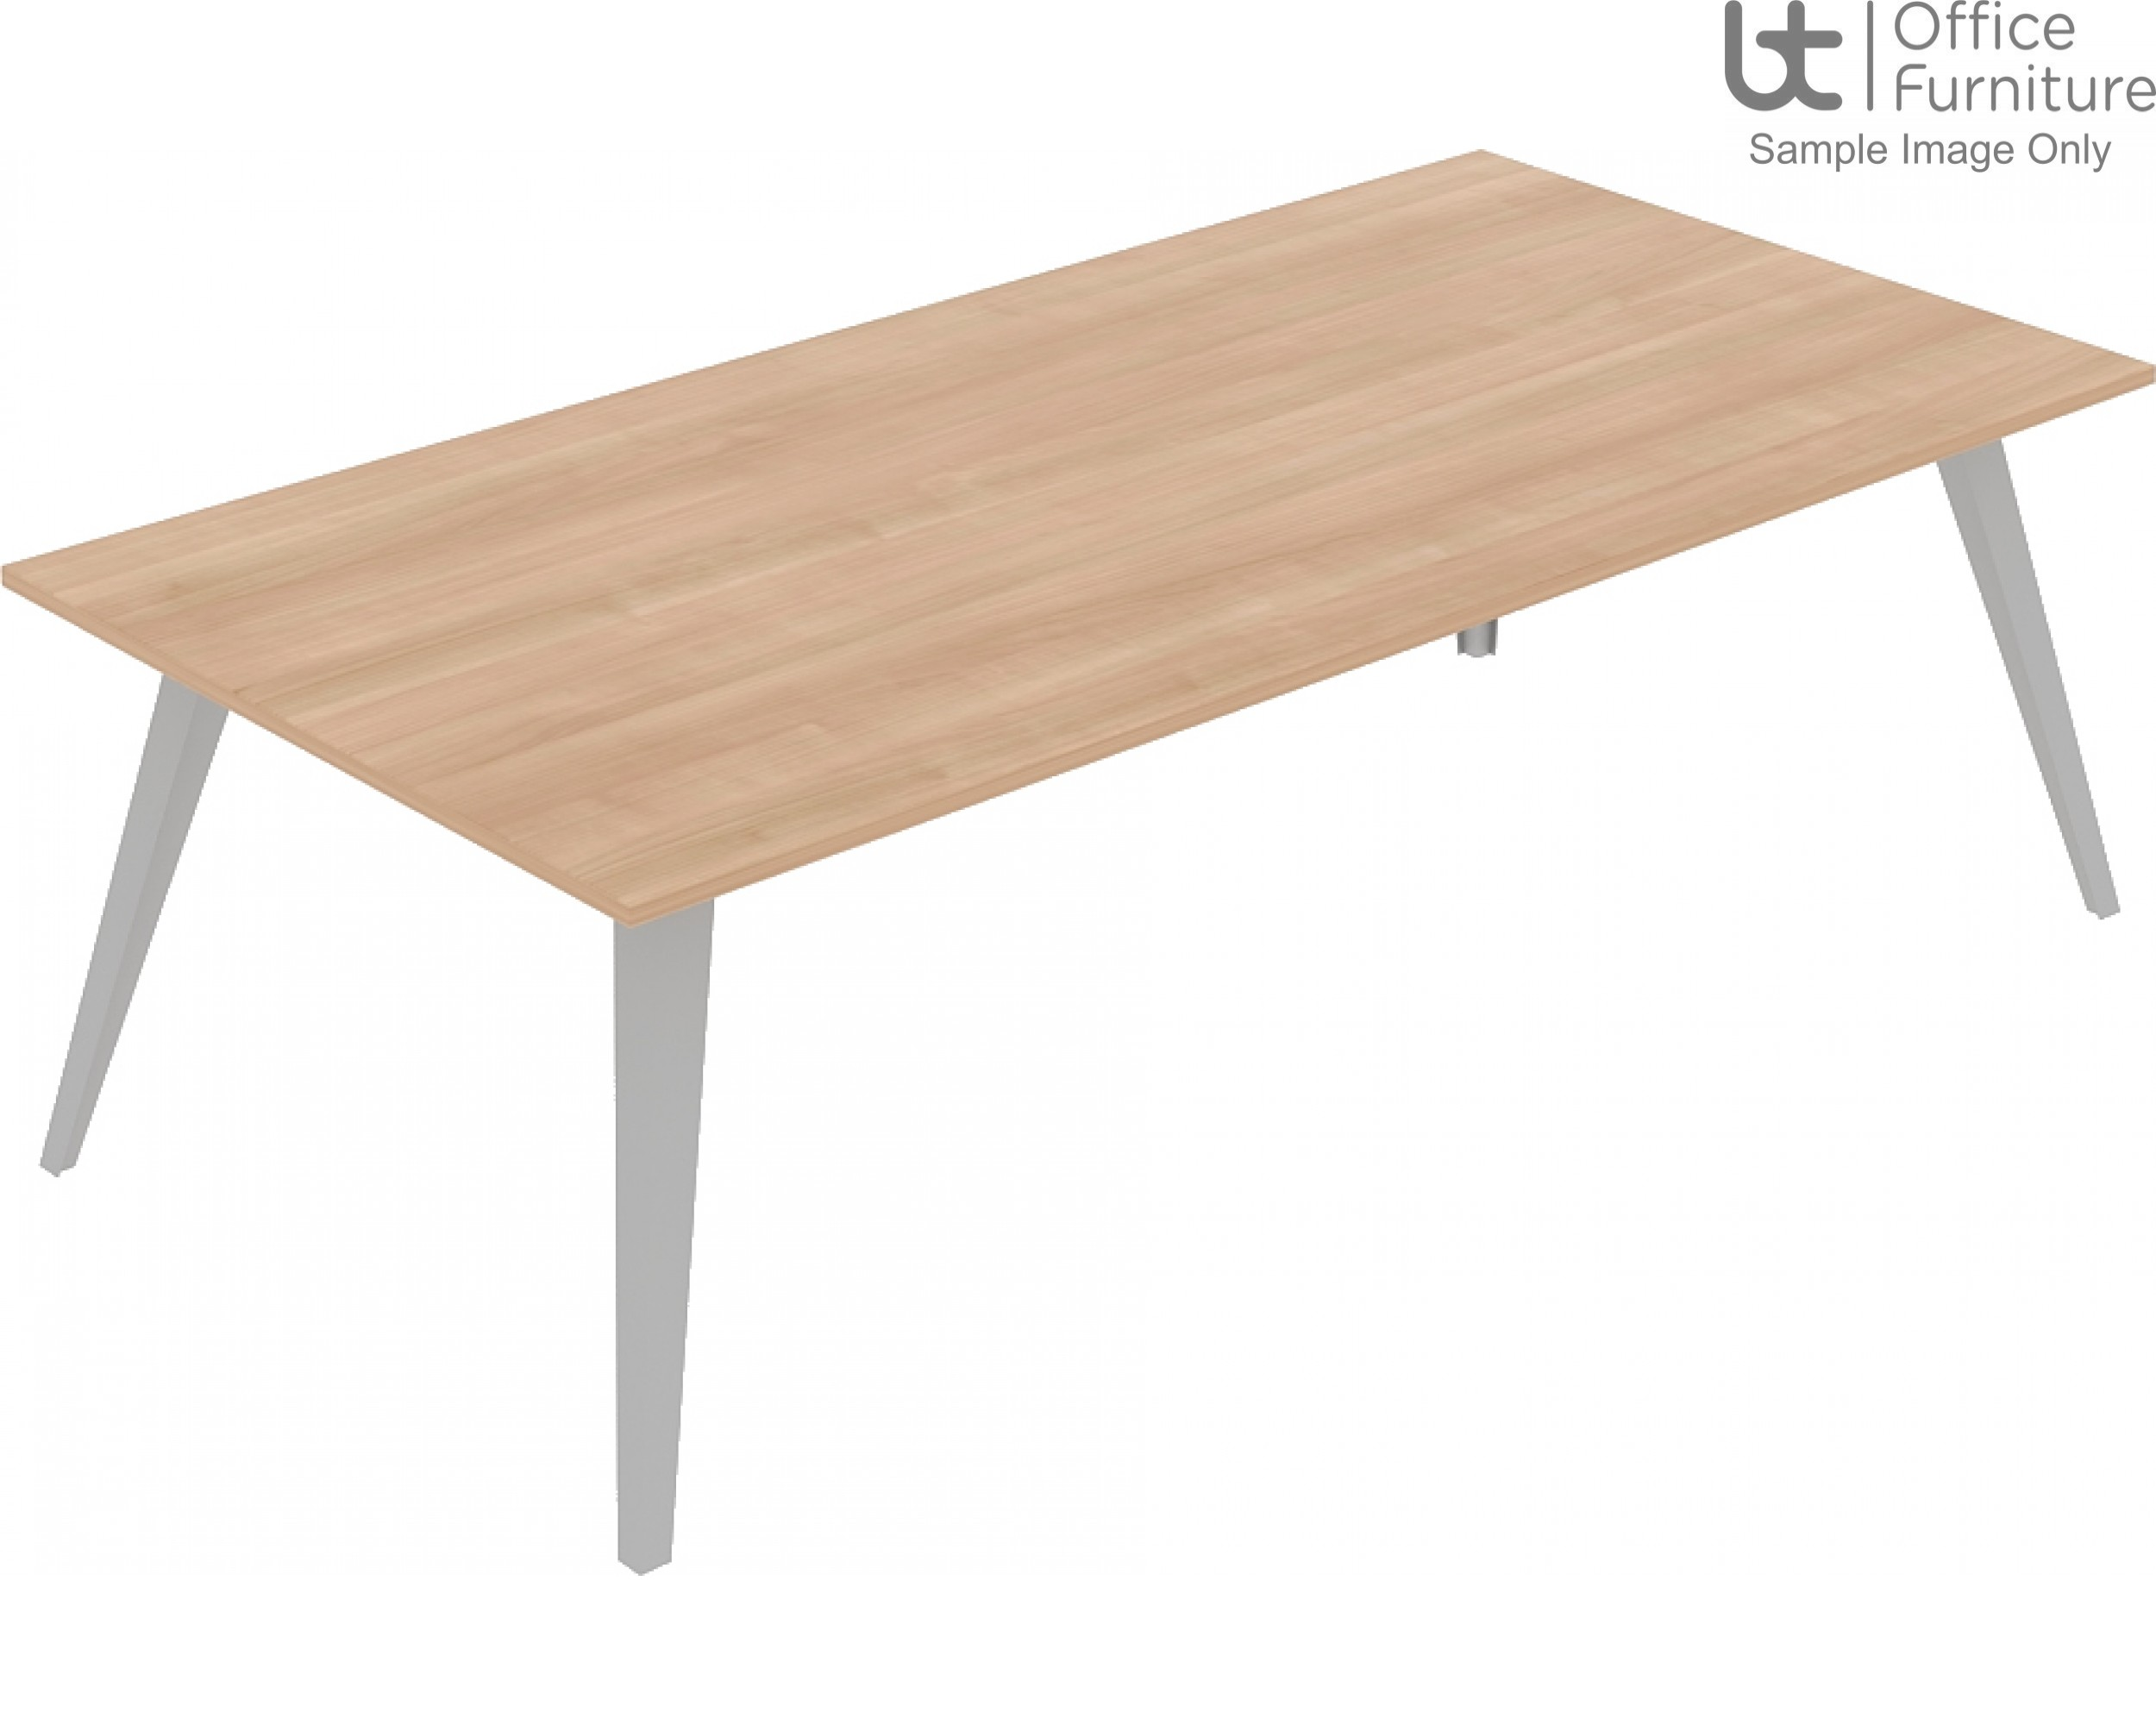 Elite Reflex Table - Meeting/Boardroom Tables 1200mm Deep - 1400mm to 4800mm Long